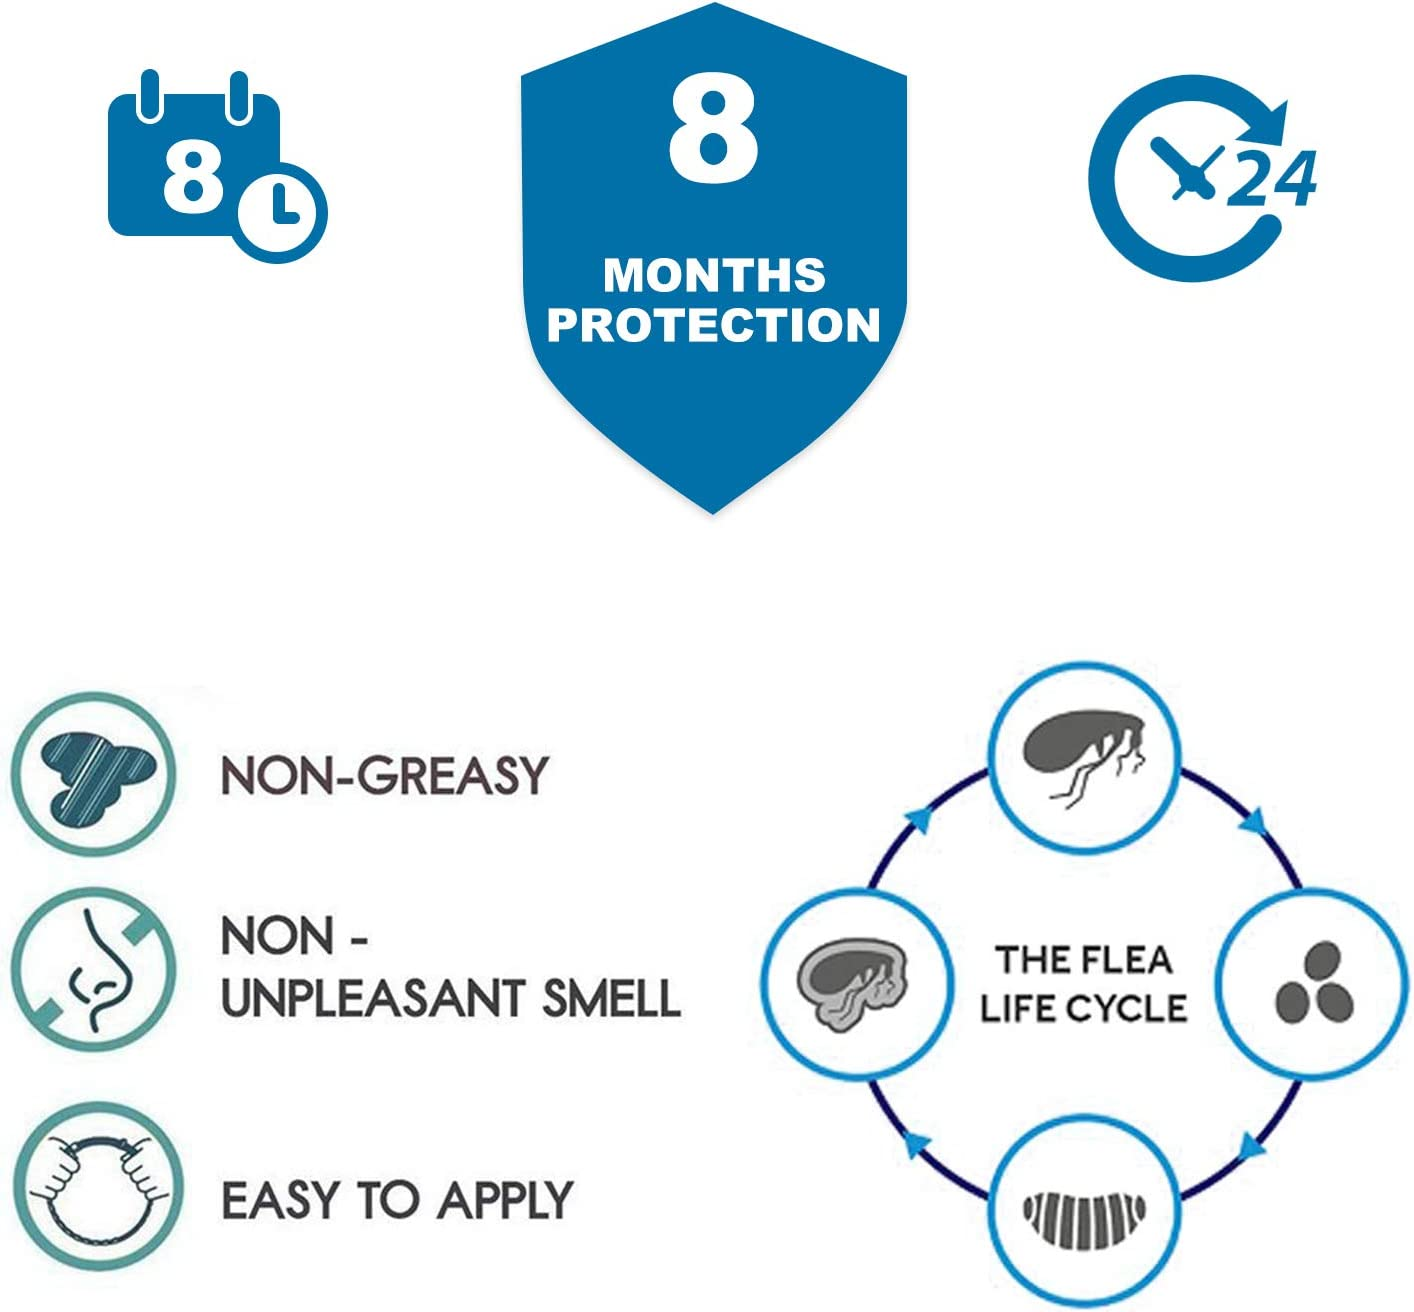 8 Month No-Toxic Protection and Tick Control,Natural Essential,Non-Allergy and Waterproof U-picks Flea and Tick Collar for Dogs Cats Grey-8 Months